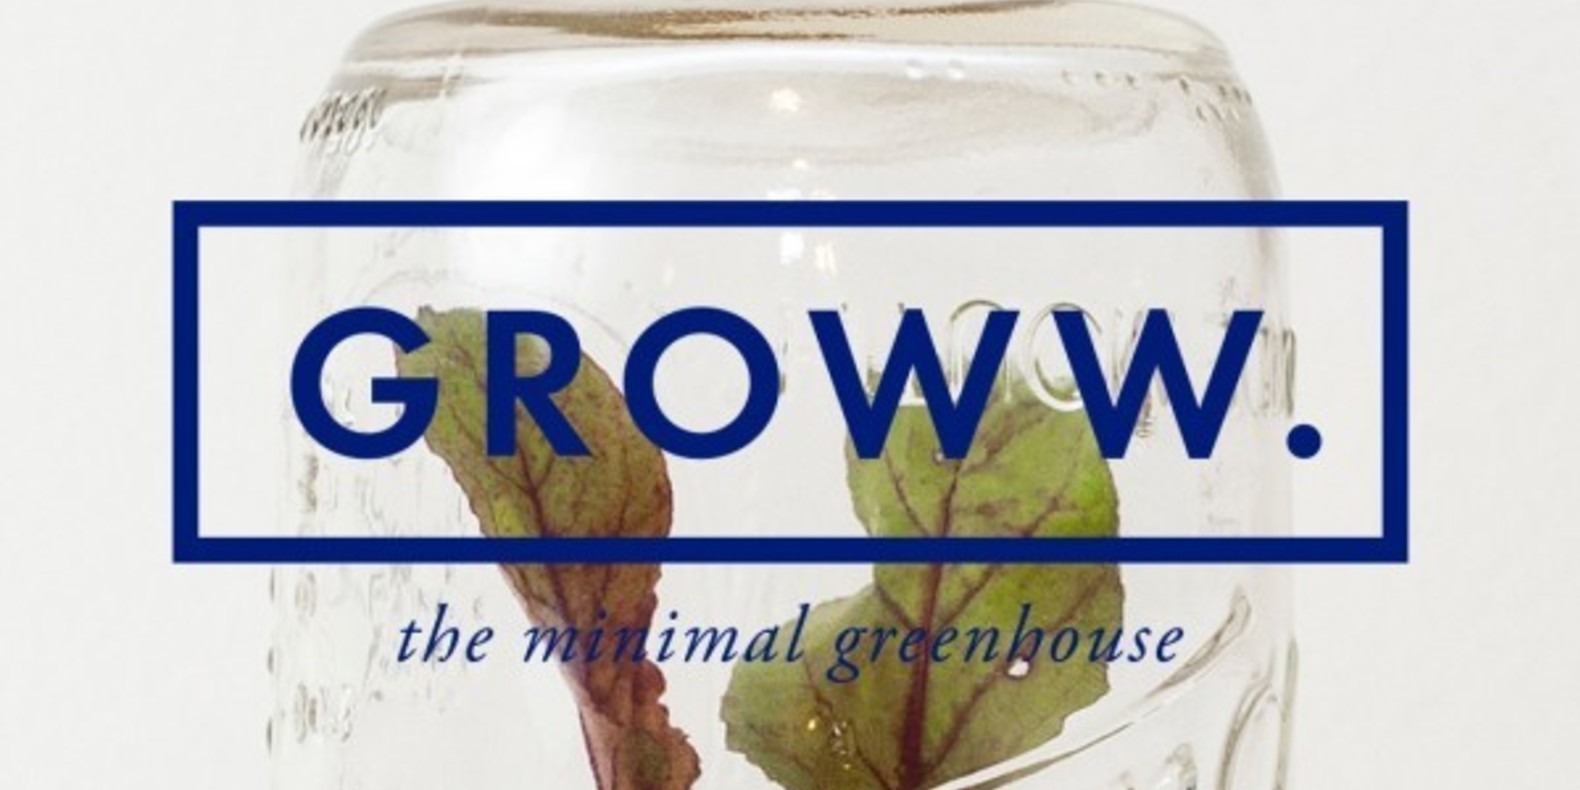 Groww uau project polish designer minimal greenhouse serre 3D printed imprimée en 3D fichier STL Cults upcycling 5